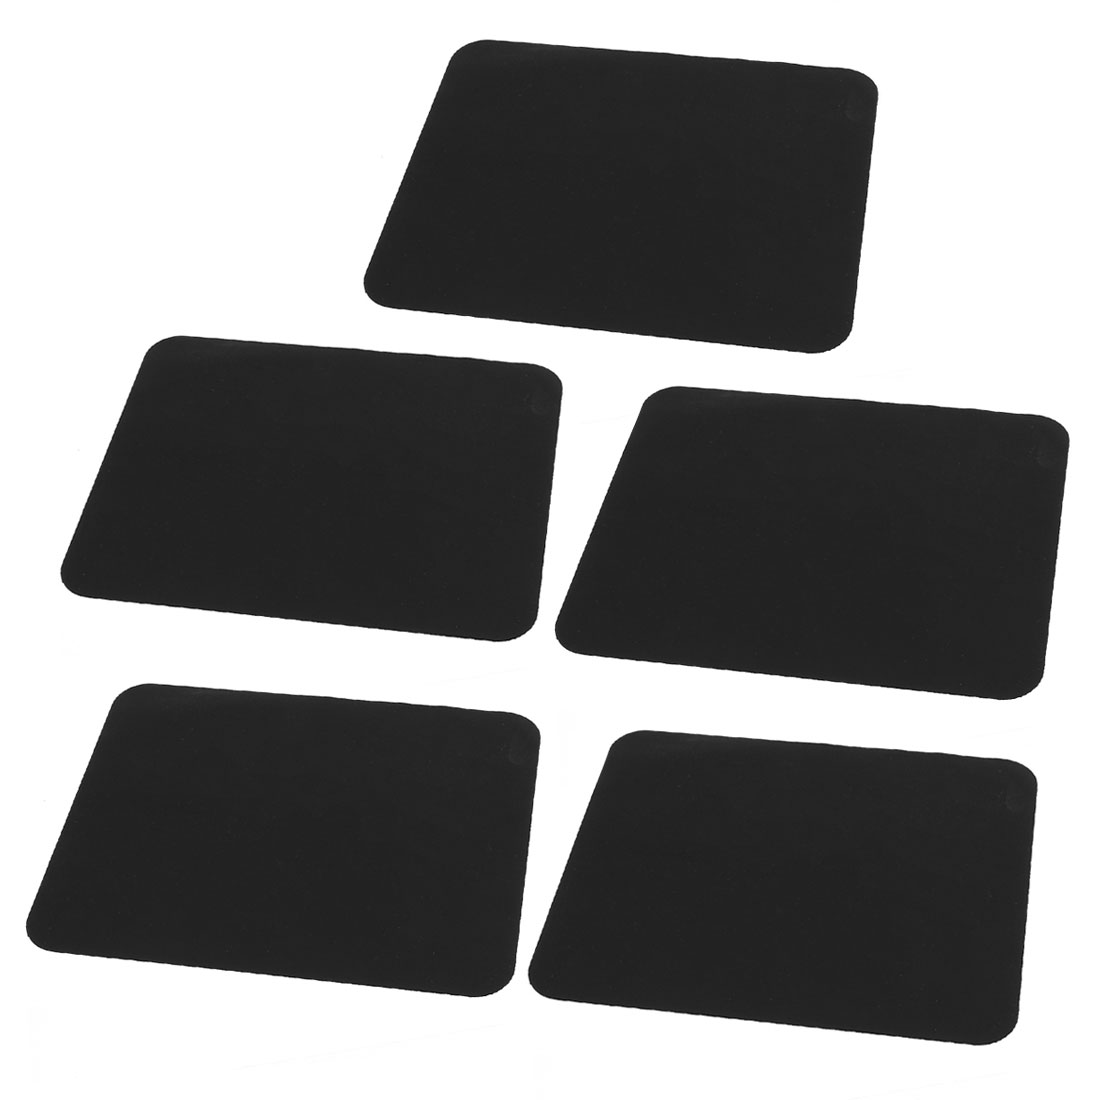 5 Pcs Black Soft Faux Leather Slip Gaming Mouse Pad Mat 210mmx170mm